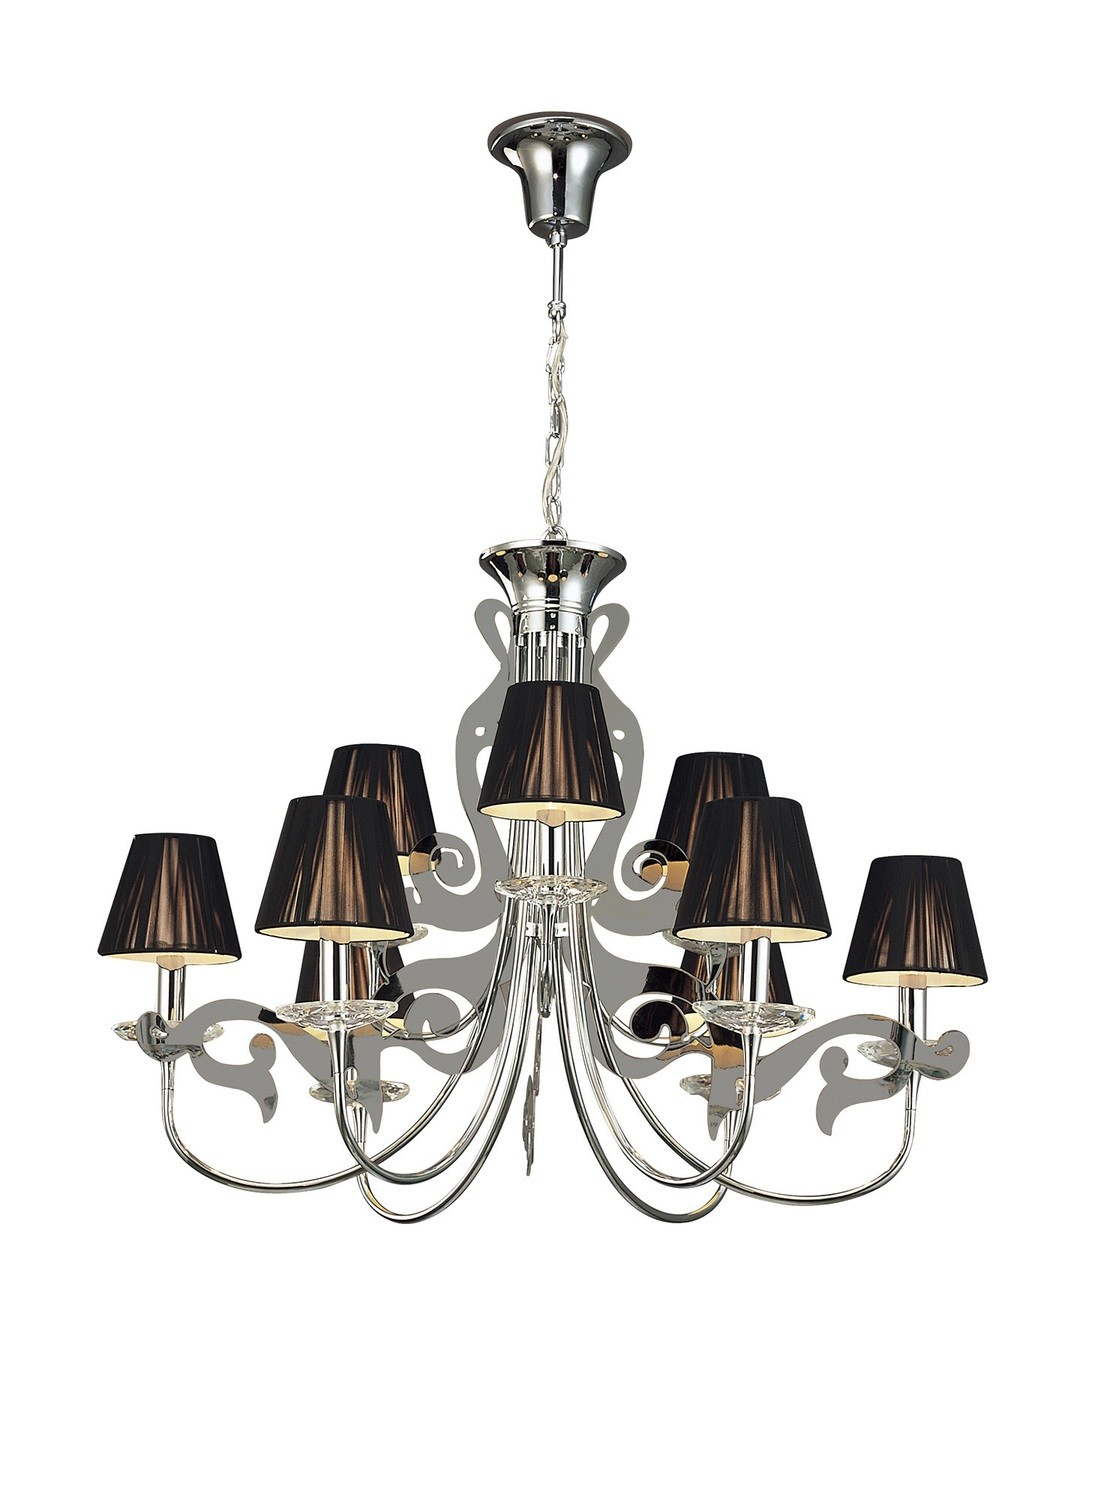 Acanto Pendant Round 9 Light E14, Polished Chrome With Black Shades